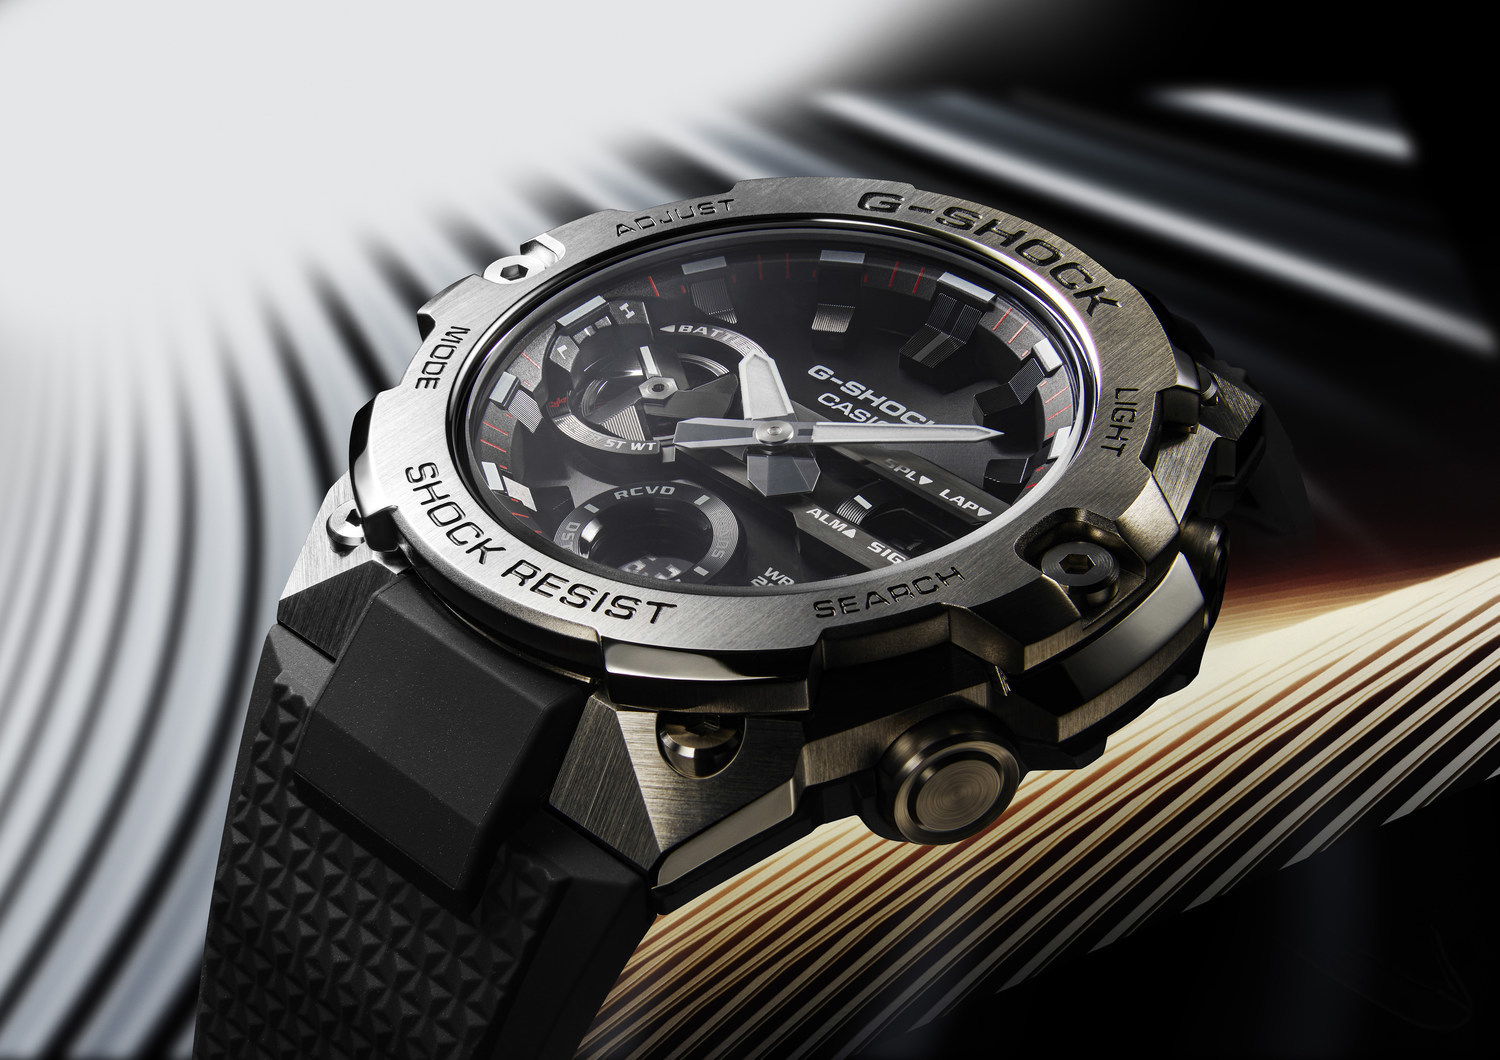 Casio releases four new GST-B400 watches